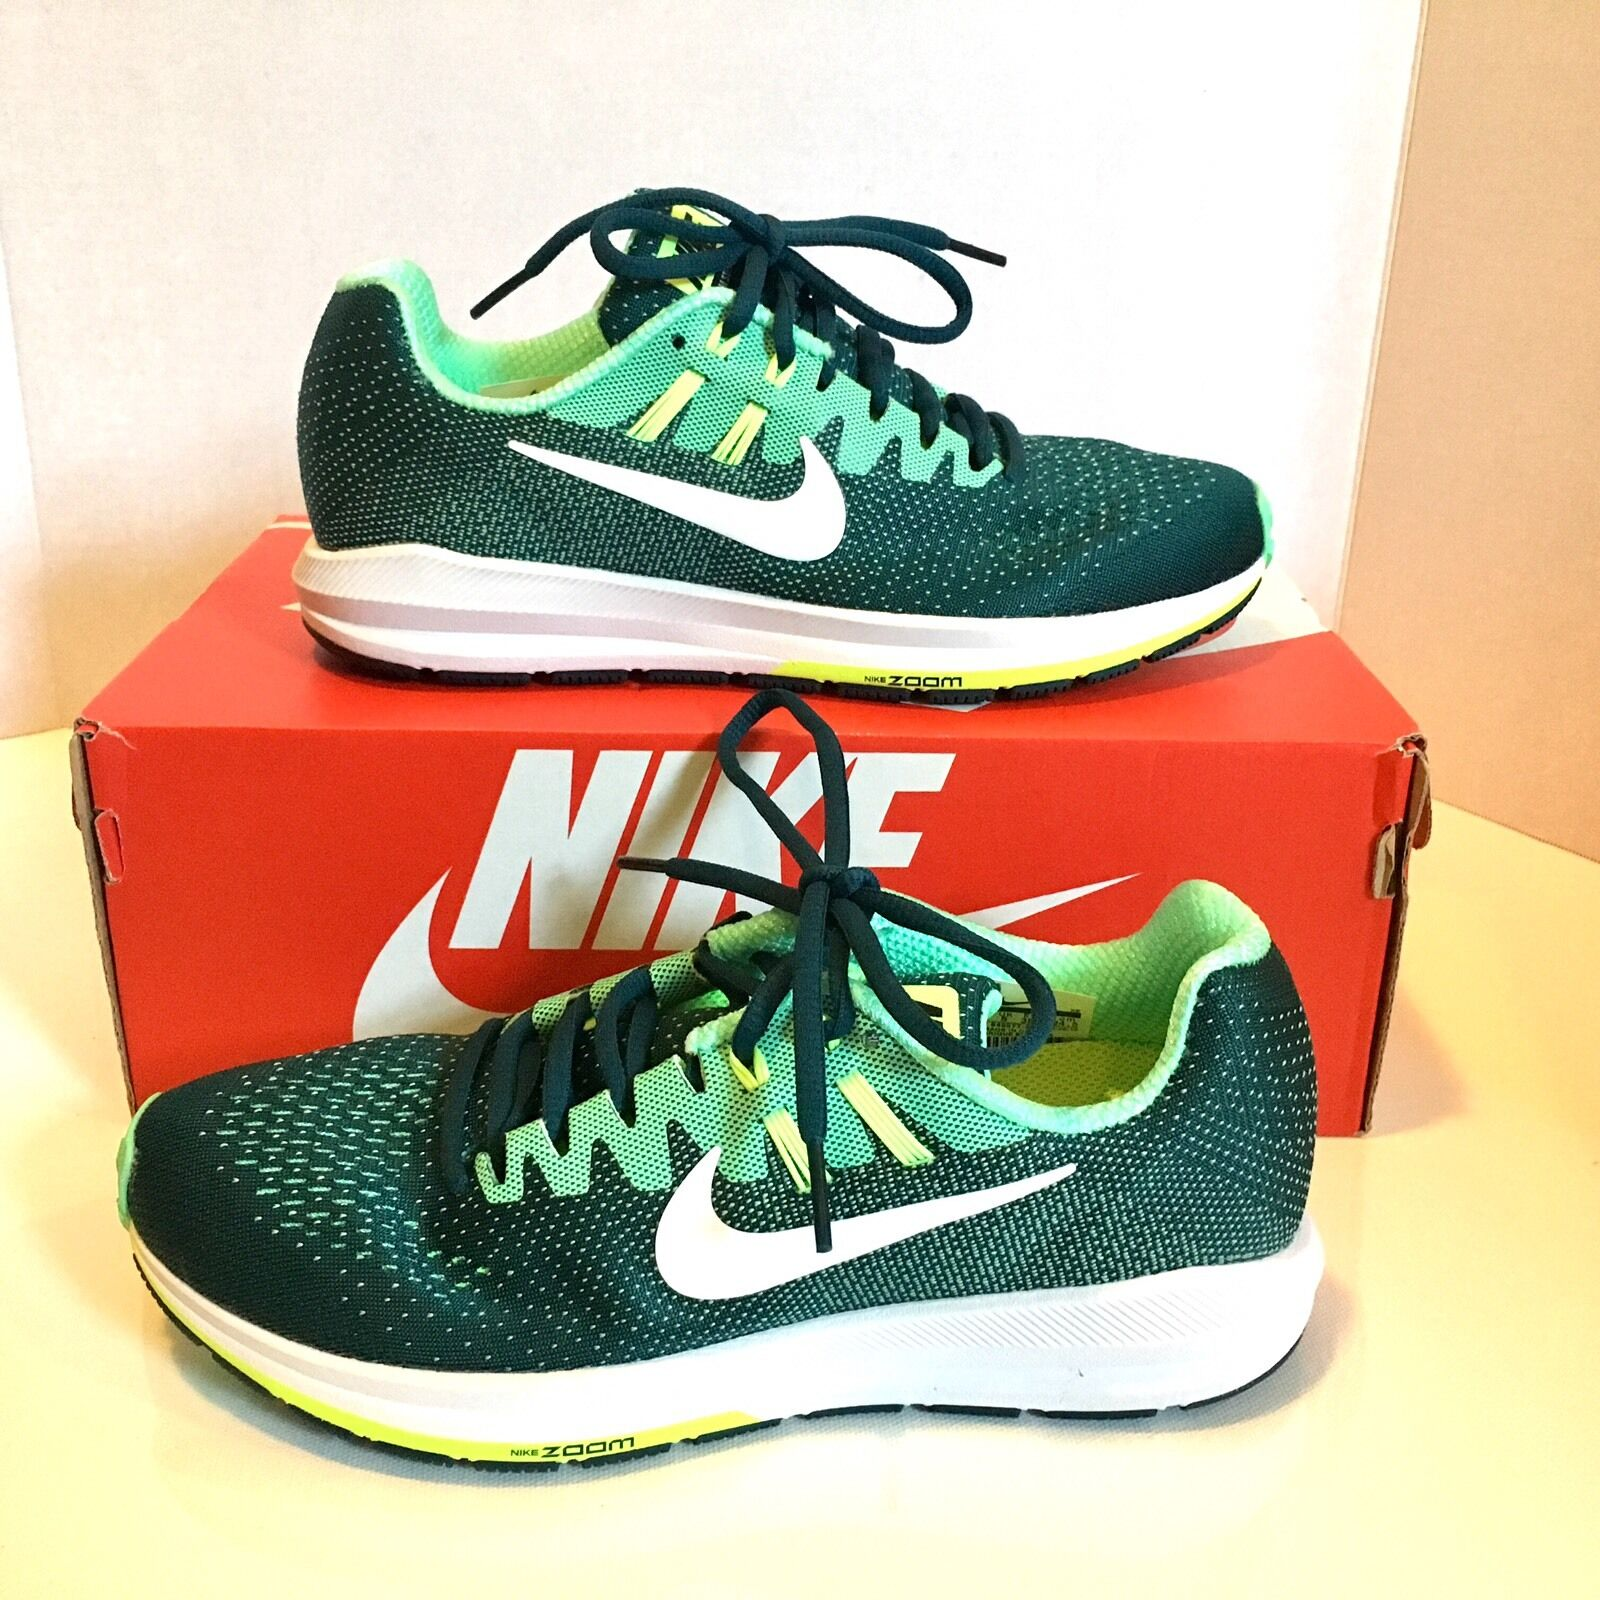 WMNS NIKE 849577 AIR ZOOM STRUCTURE STRUCTURE STRUCTURE Runfast Green, Teal & Mint RUNNING SHOES 7.5 8bb040